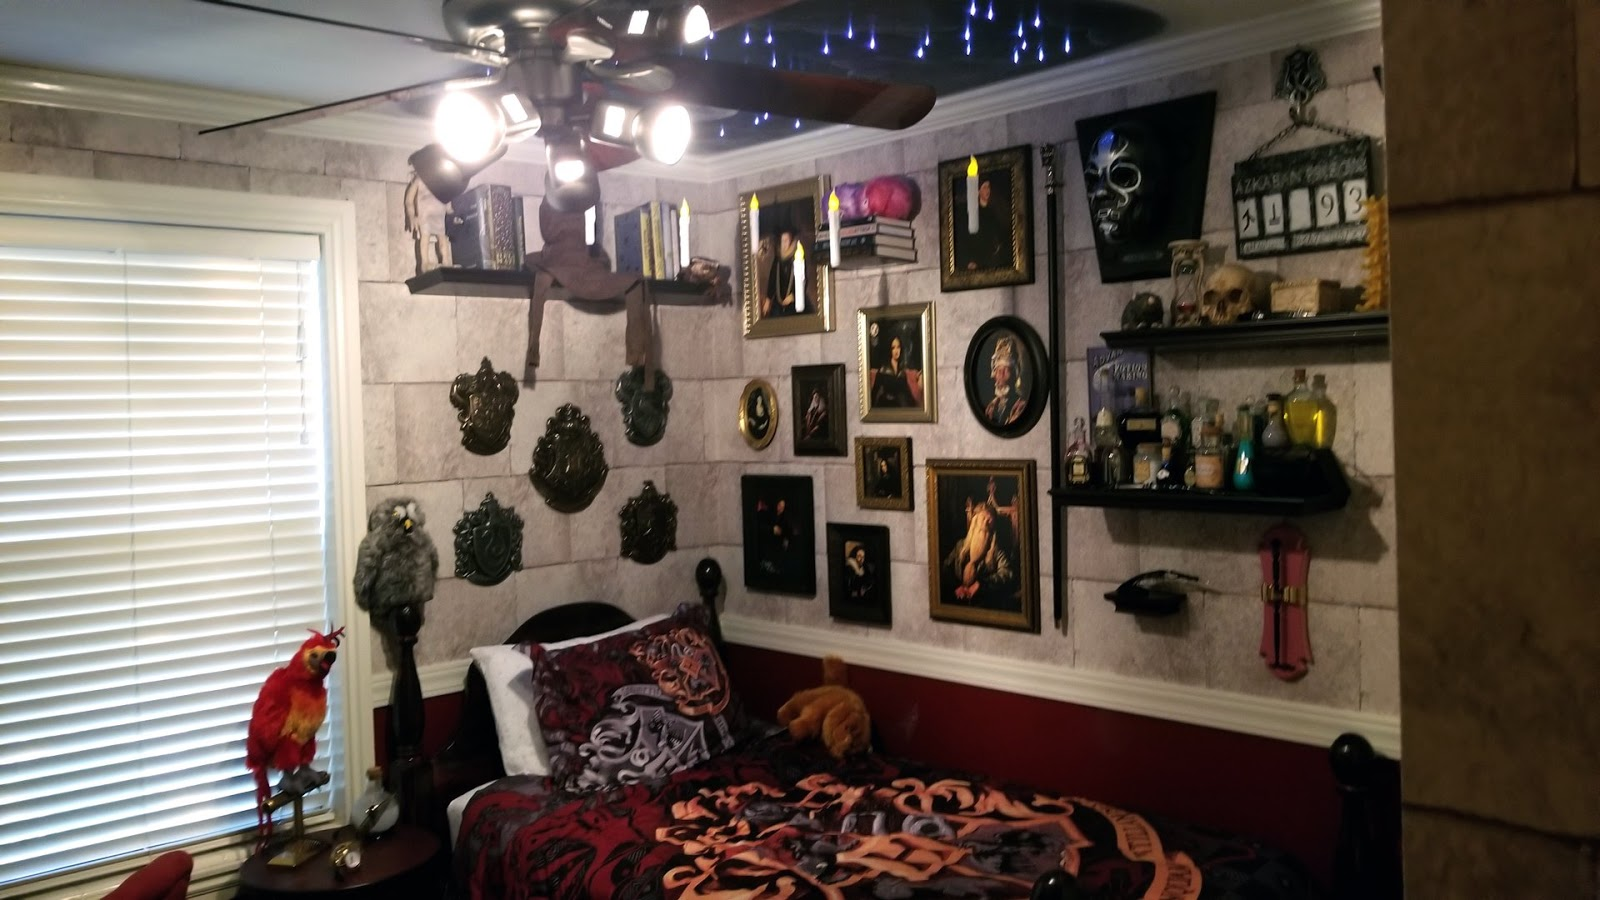 Epbot This Could Be The Harry Potter Room To End All Harry Potter Rooms So Let S Steal Their Ideas